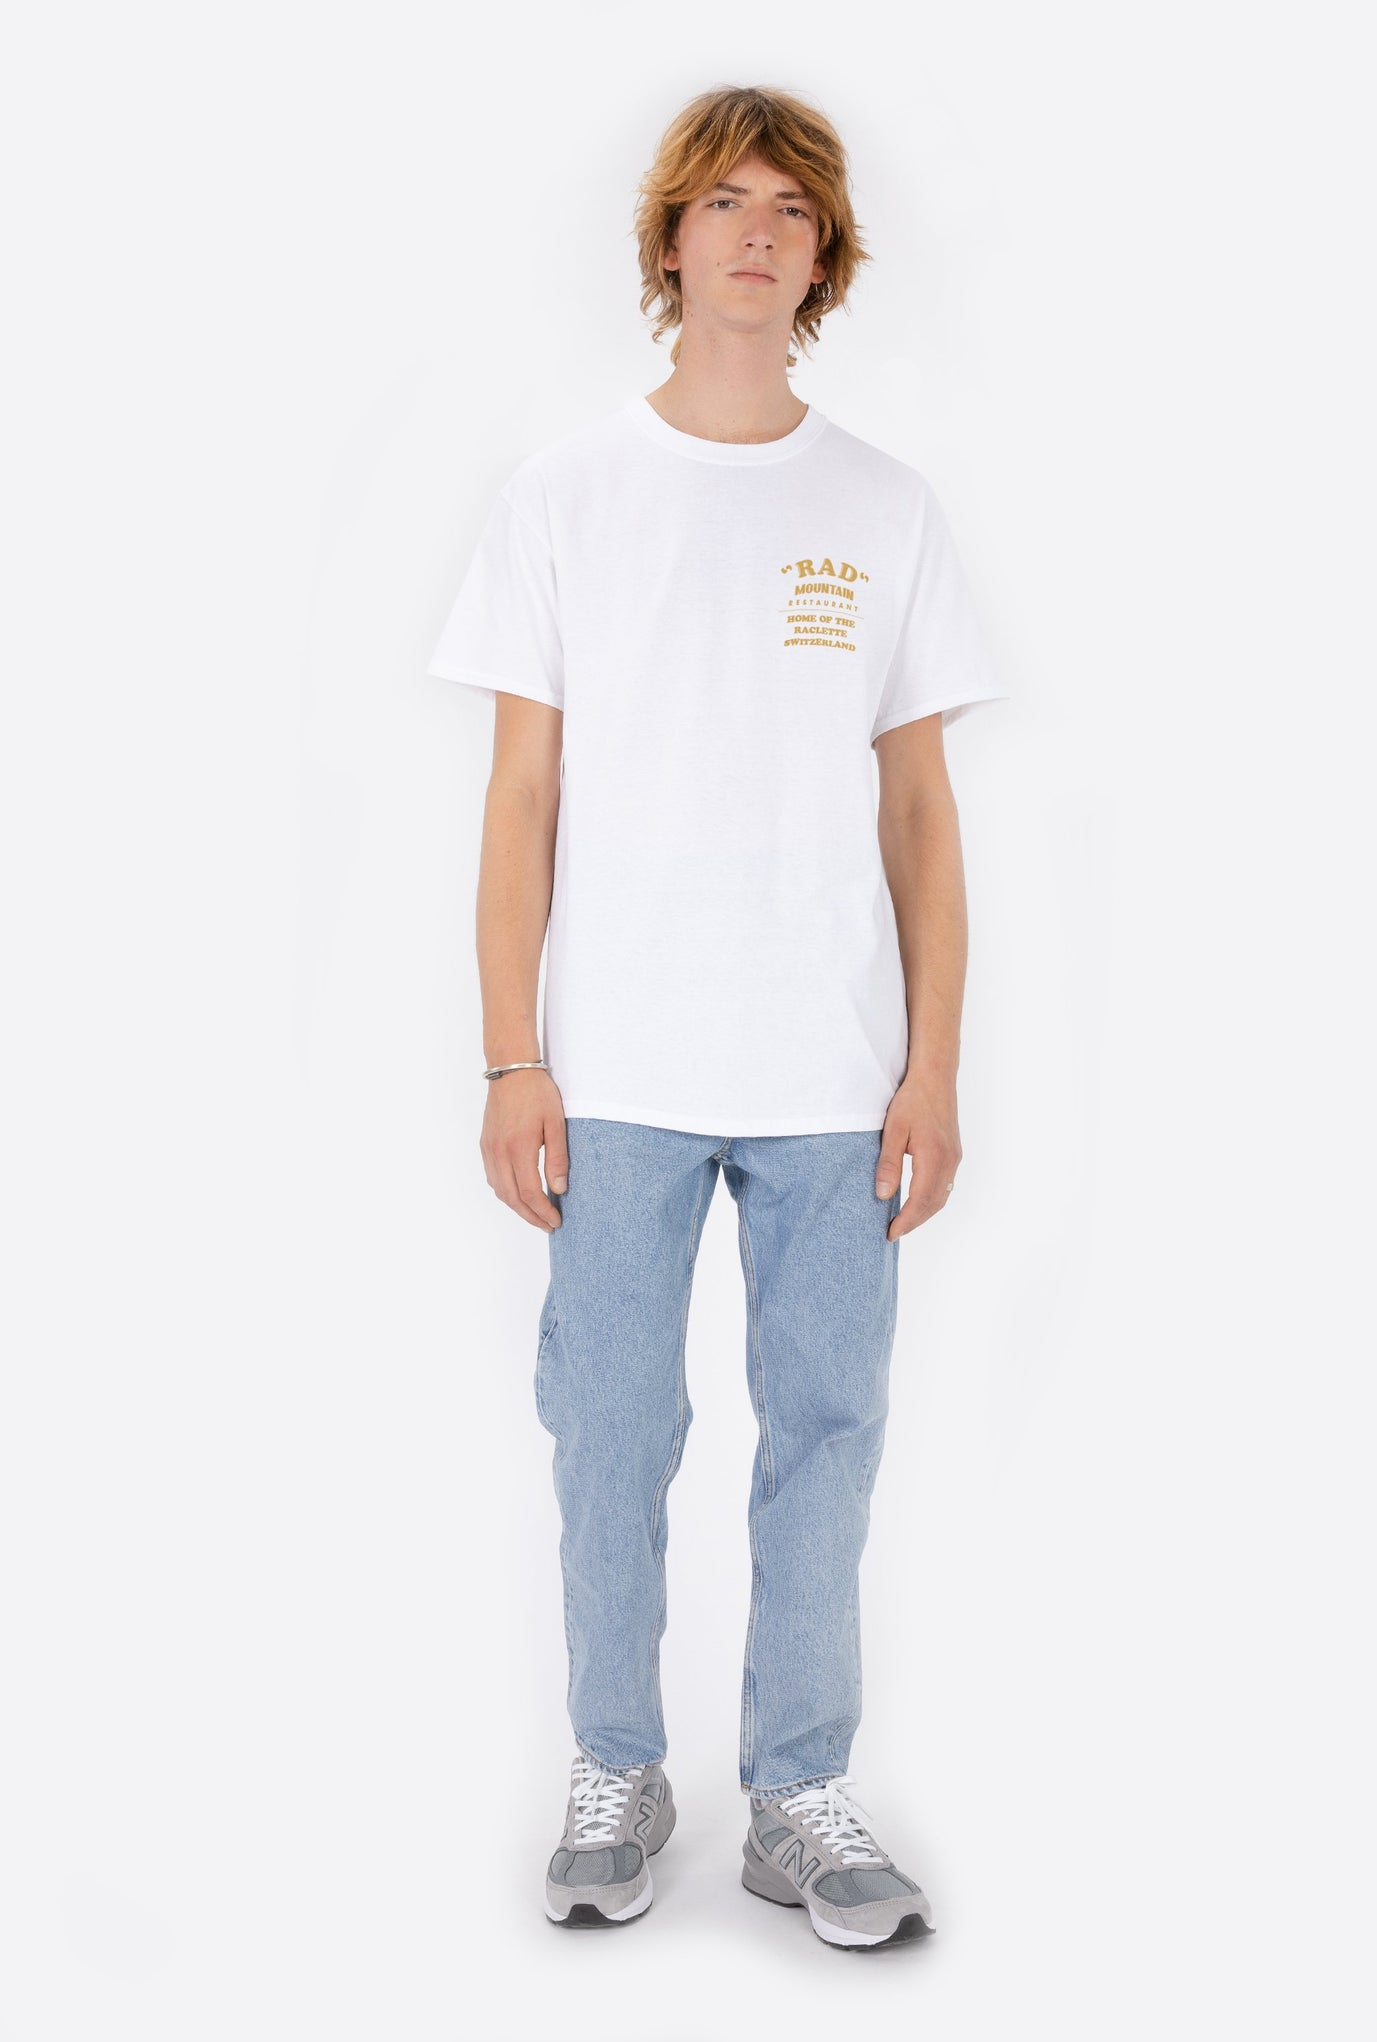 T-Shirt S/S White Rad Mountain Restaurant